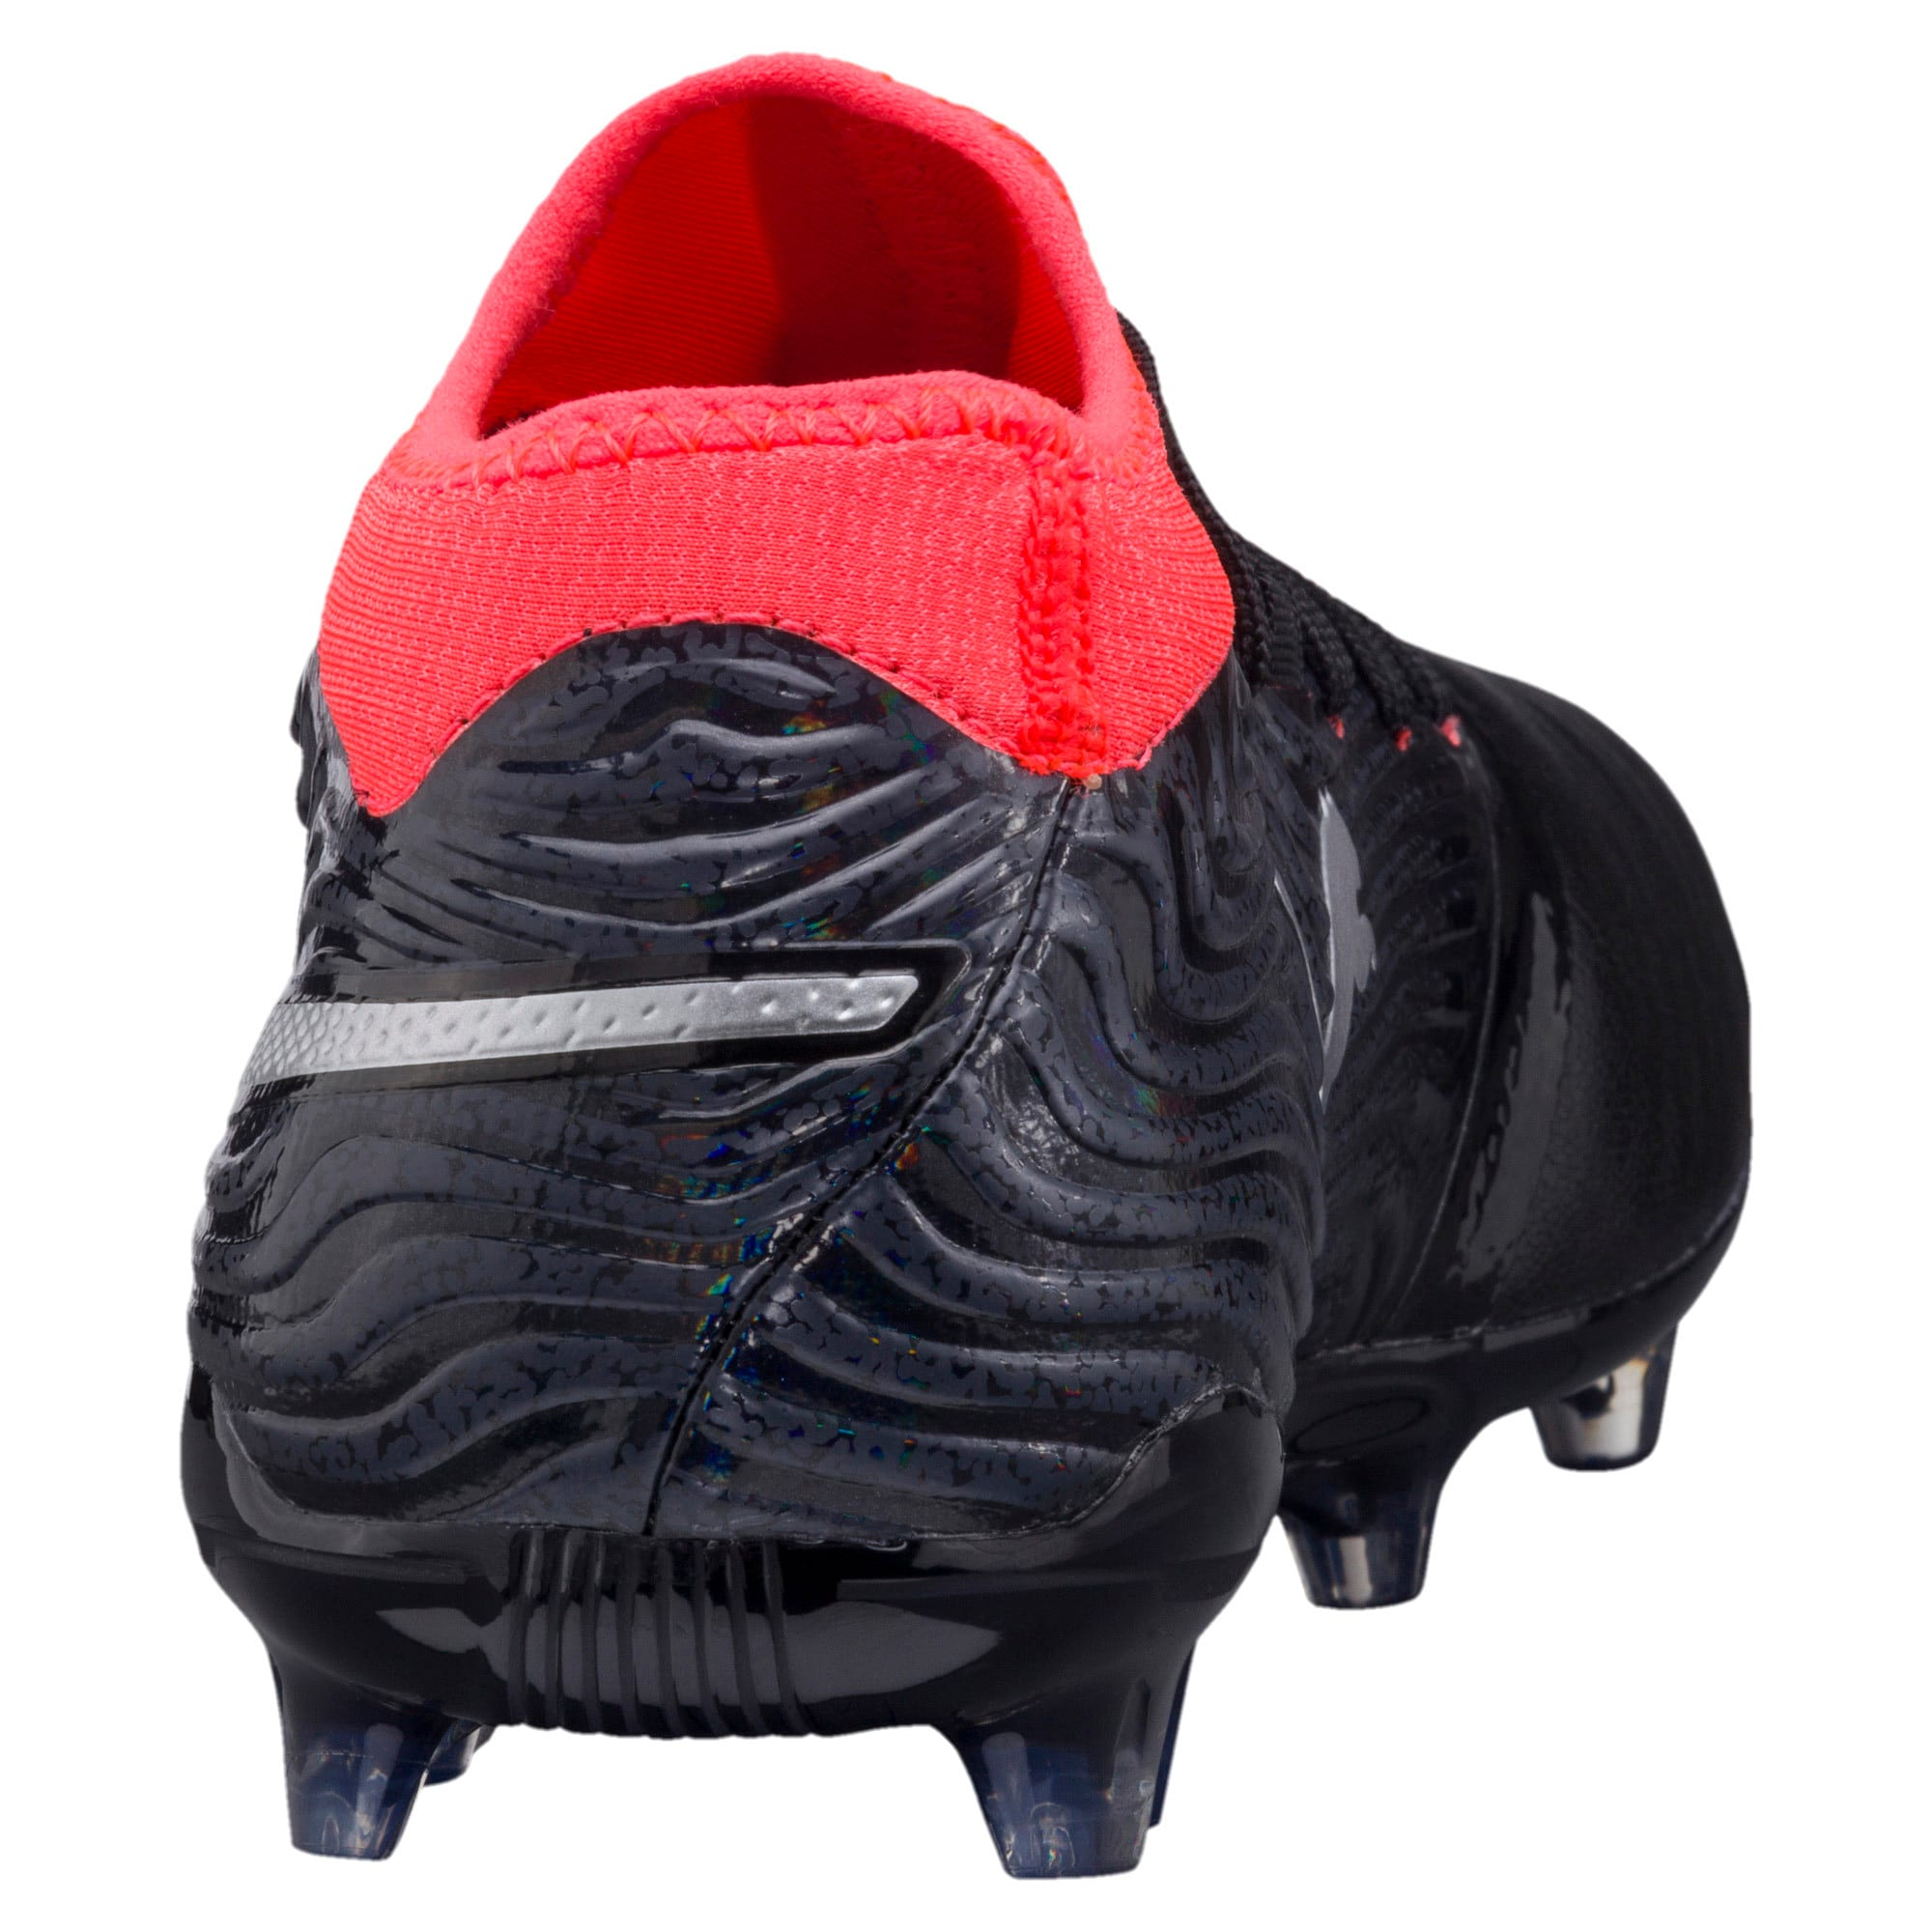 Thumbnail 4 of ONE 18.2 FG Men's Football Boots, Black-Silver-Red, medium-IND